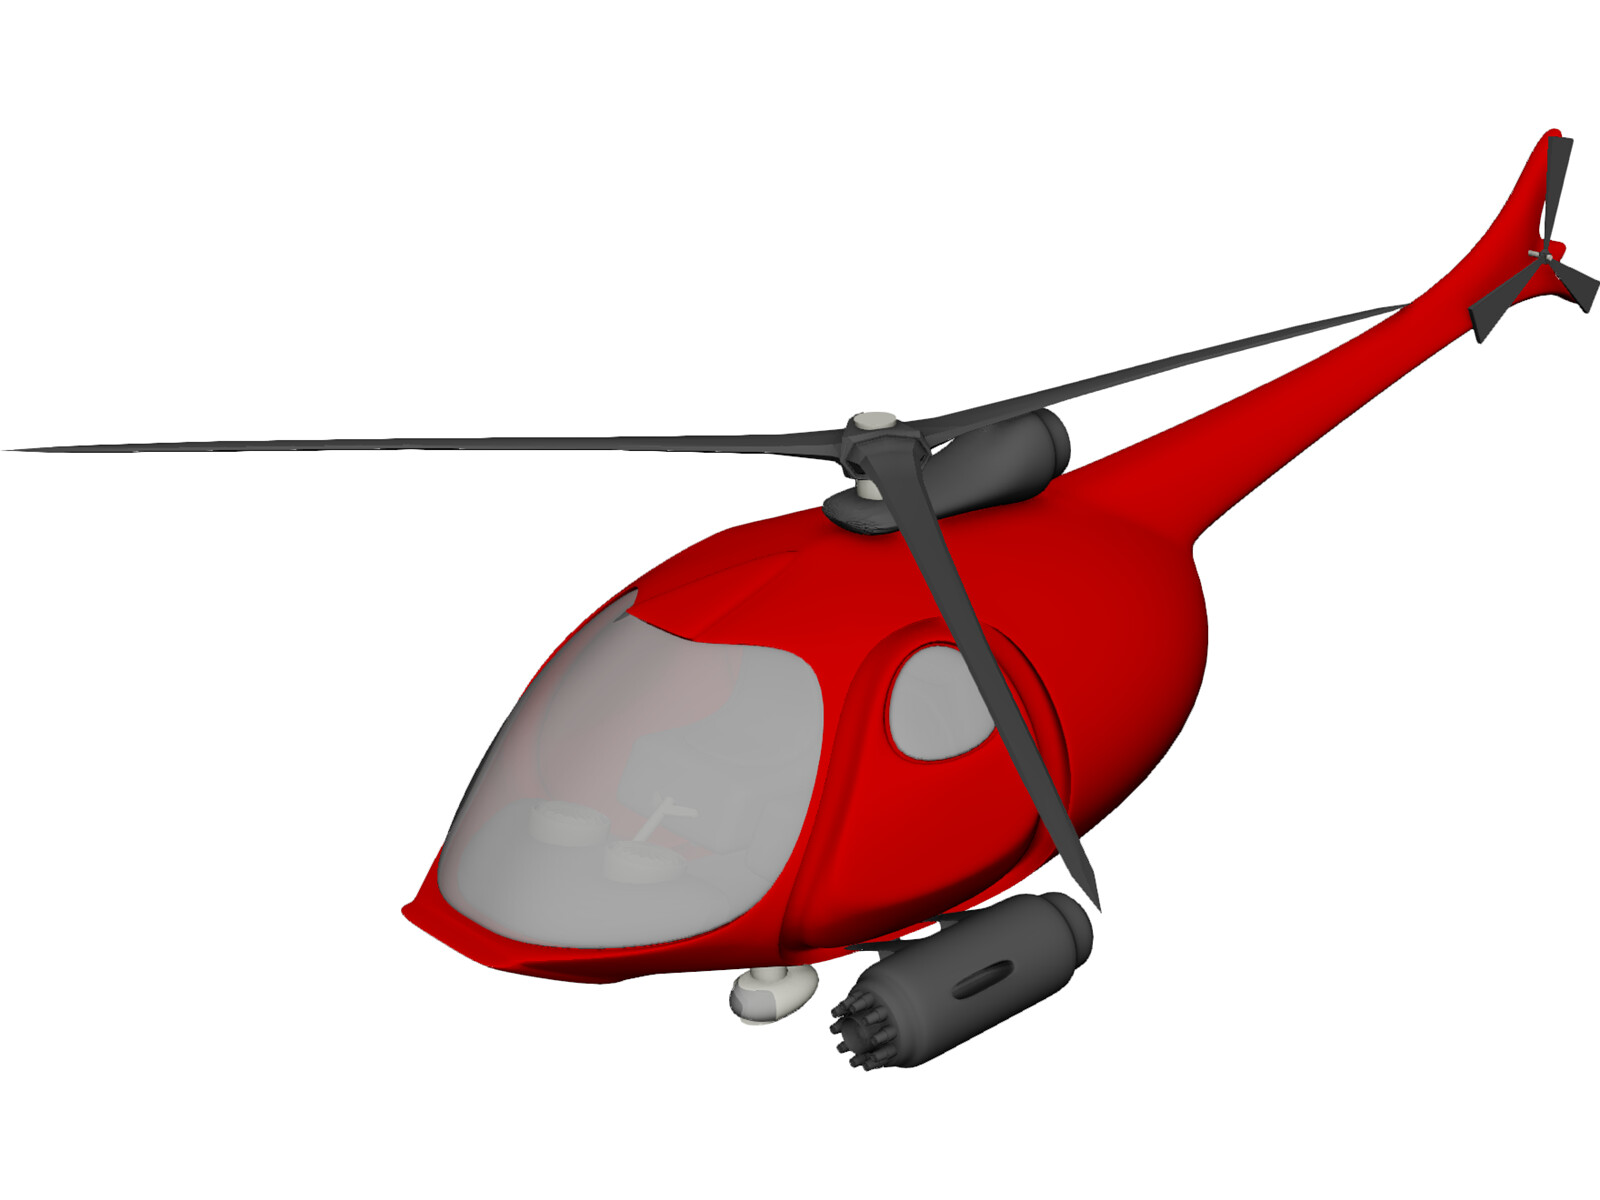 Helicopter New Concept Design